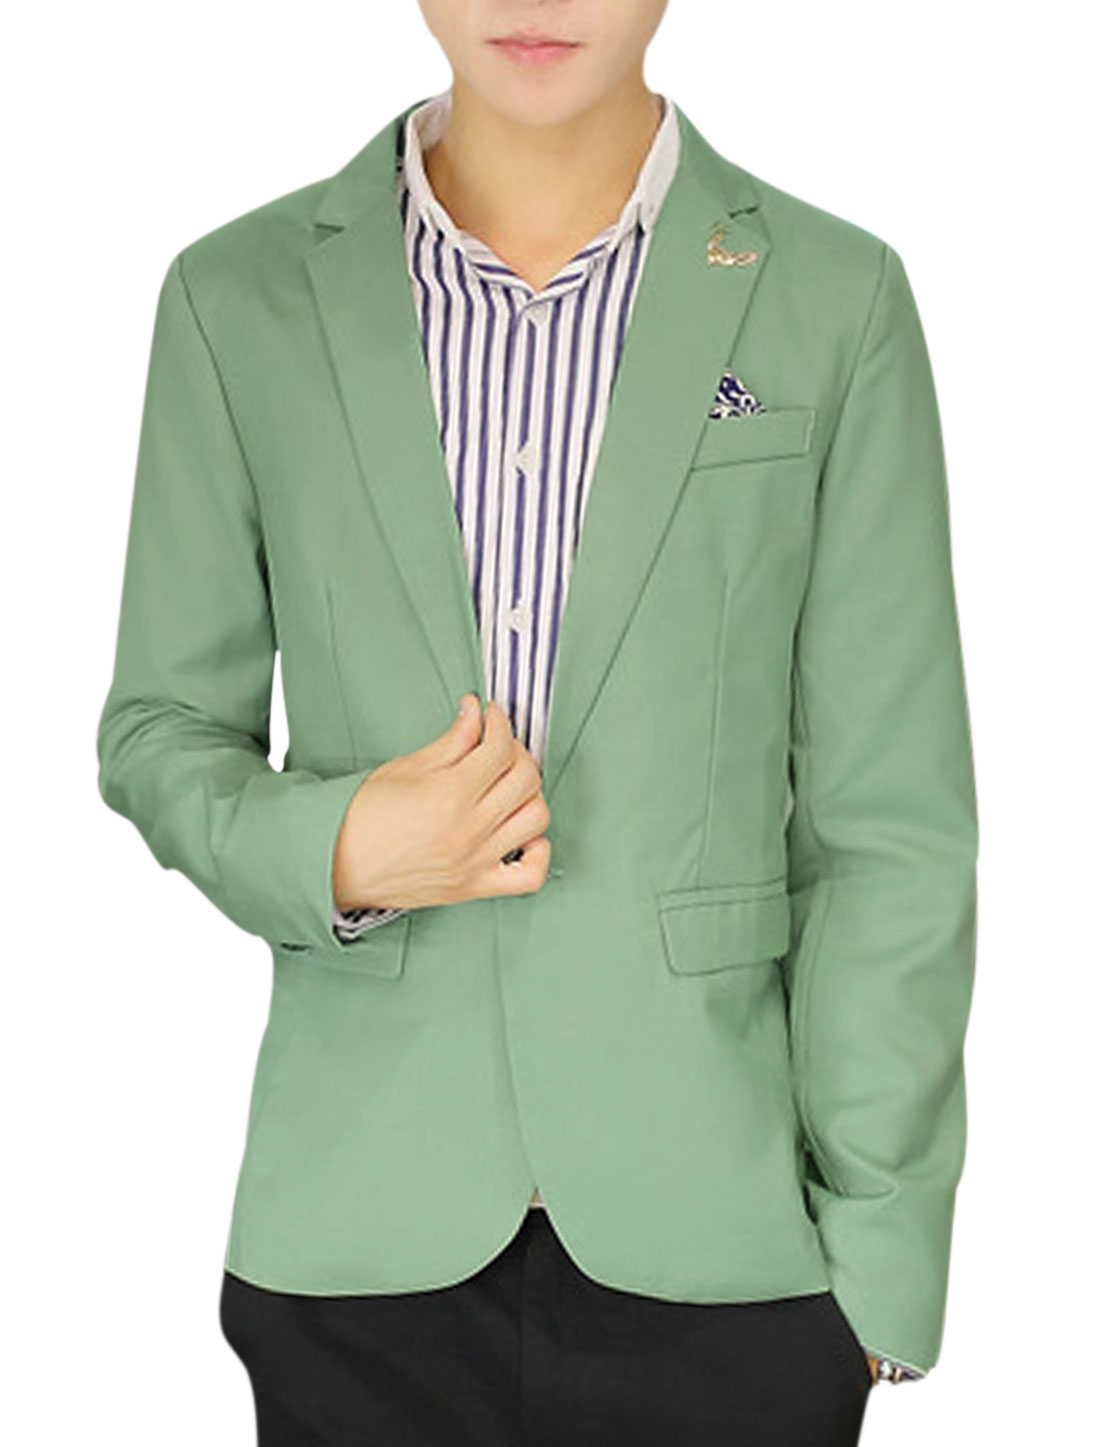 Men One Button Closed Split Back Leisure Blazer Light Green M